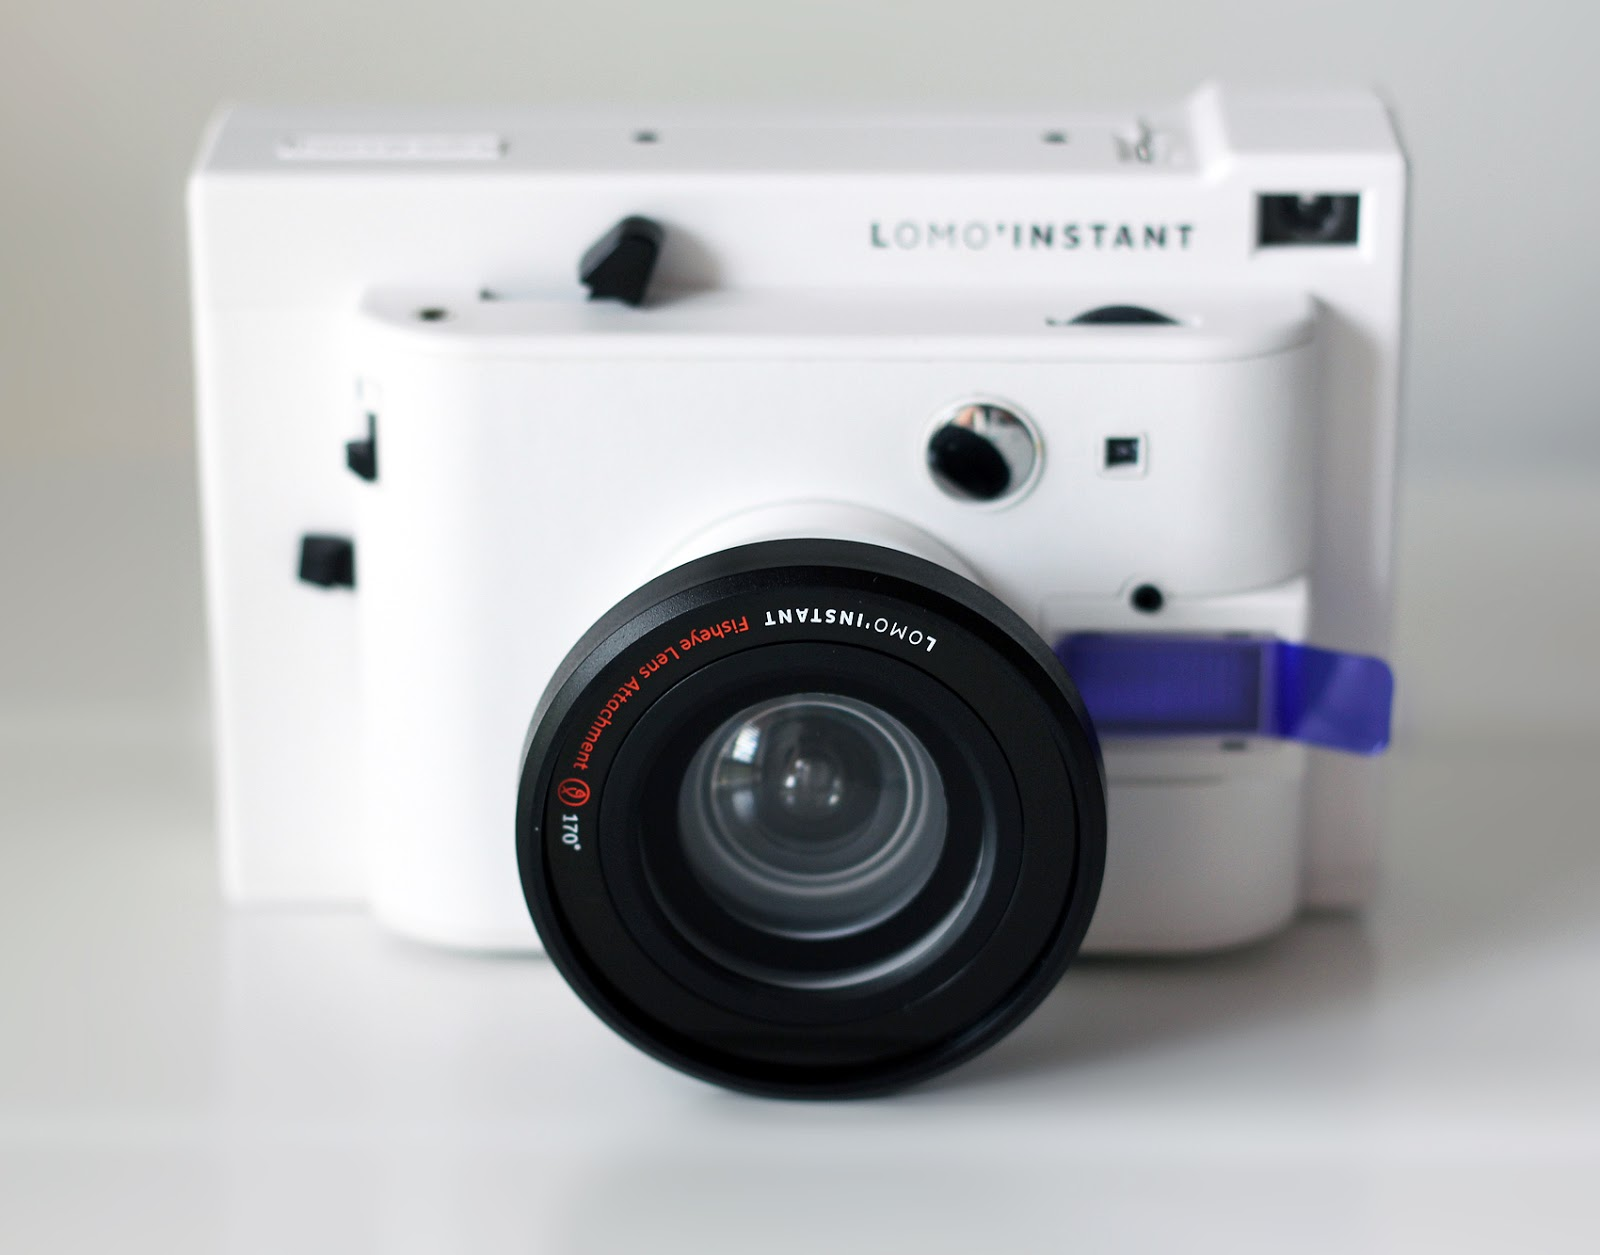 Being Erin Lomoinstant Instant Photography Size Comparison Lomography Camera Sanremo Edition With Fisheye Lens Attachment Colour Gel Filter